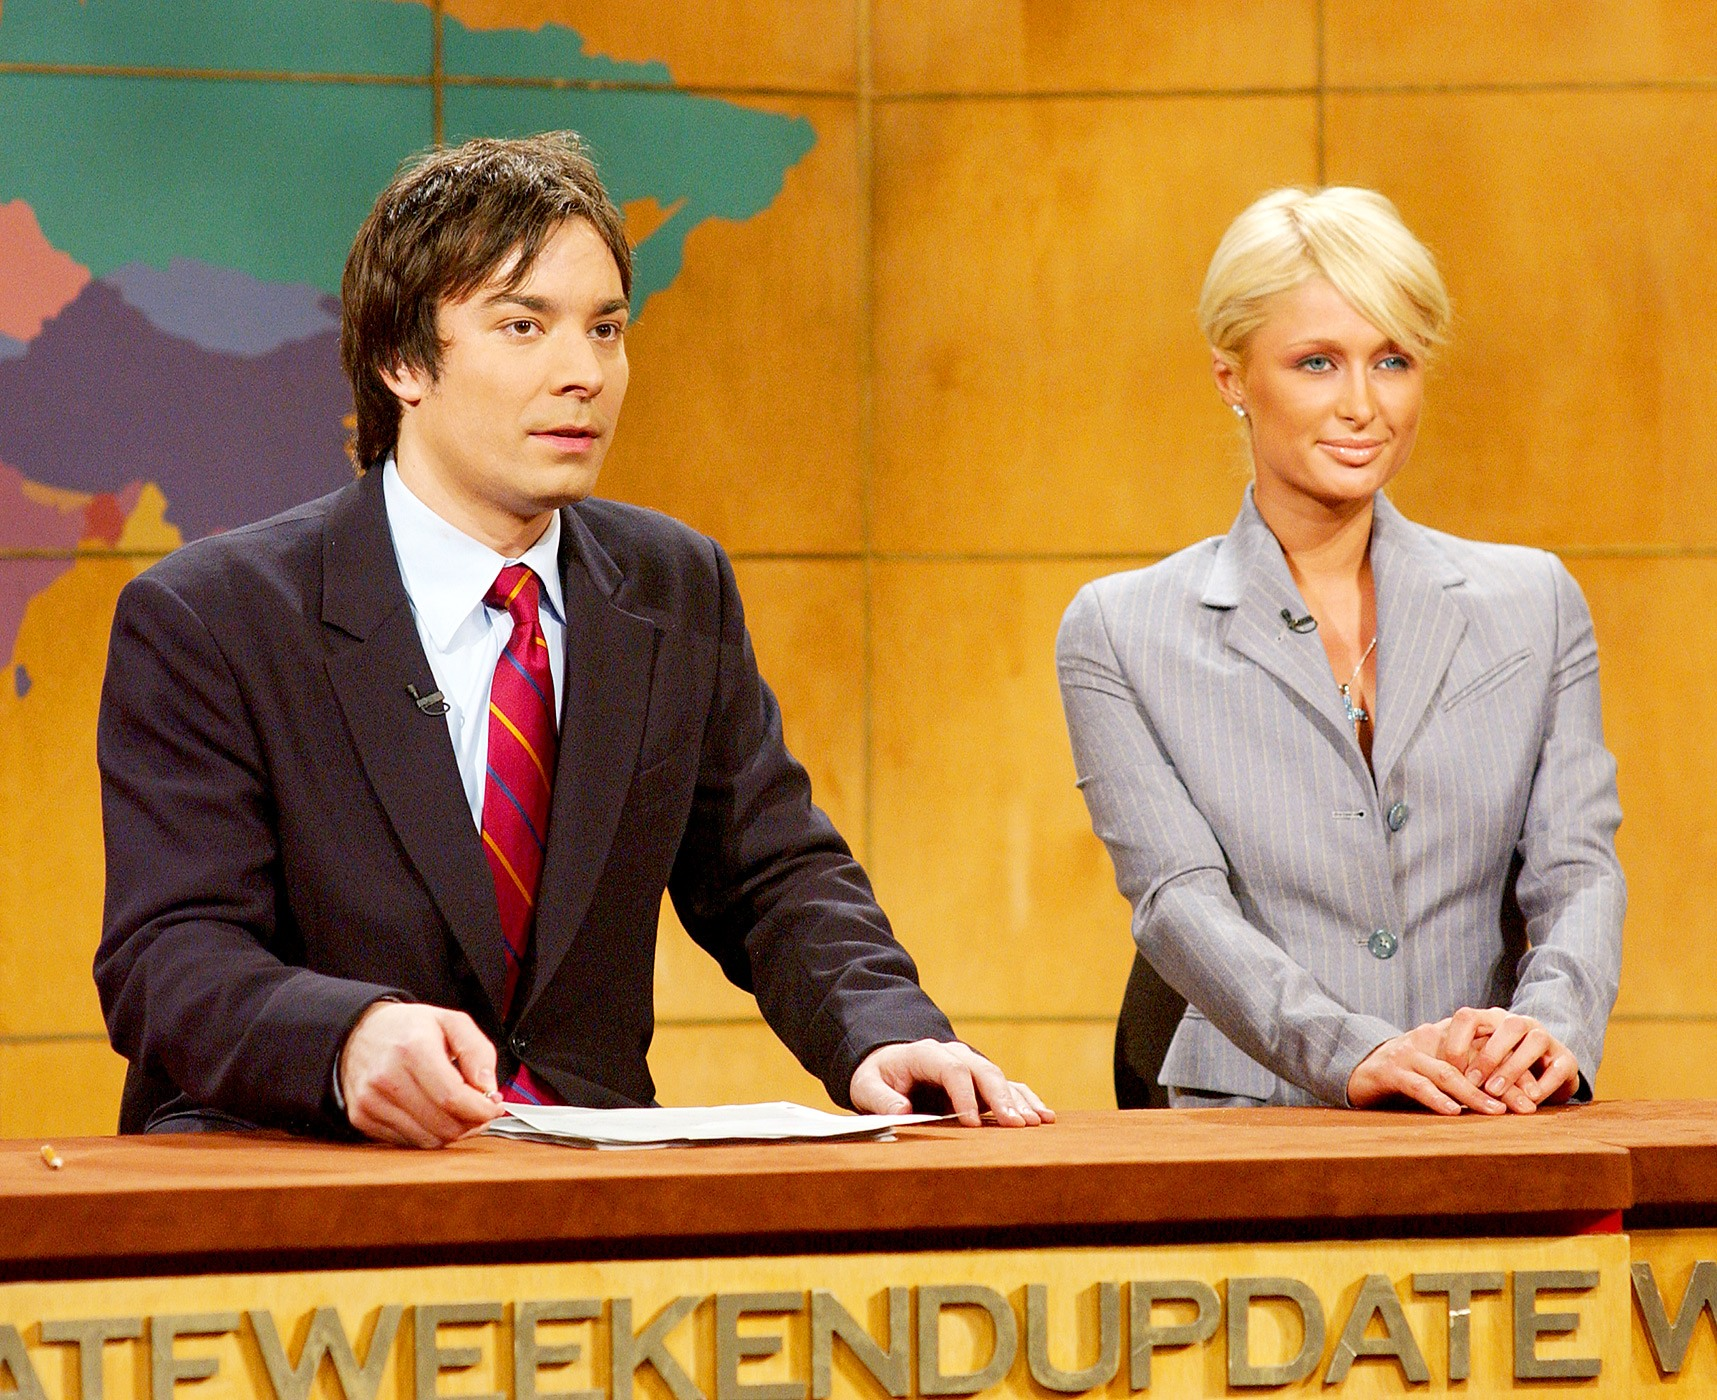 Jimmy Fallon and Paris Hilton on Saturday Night Live